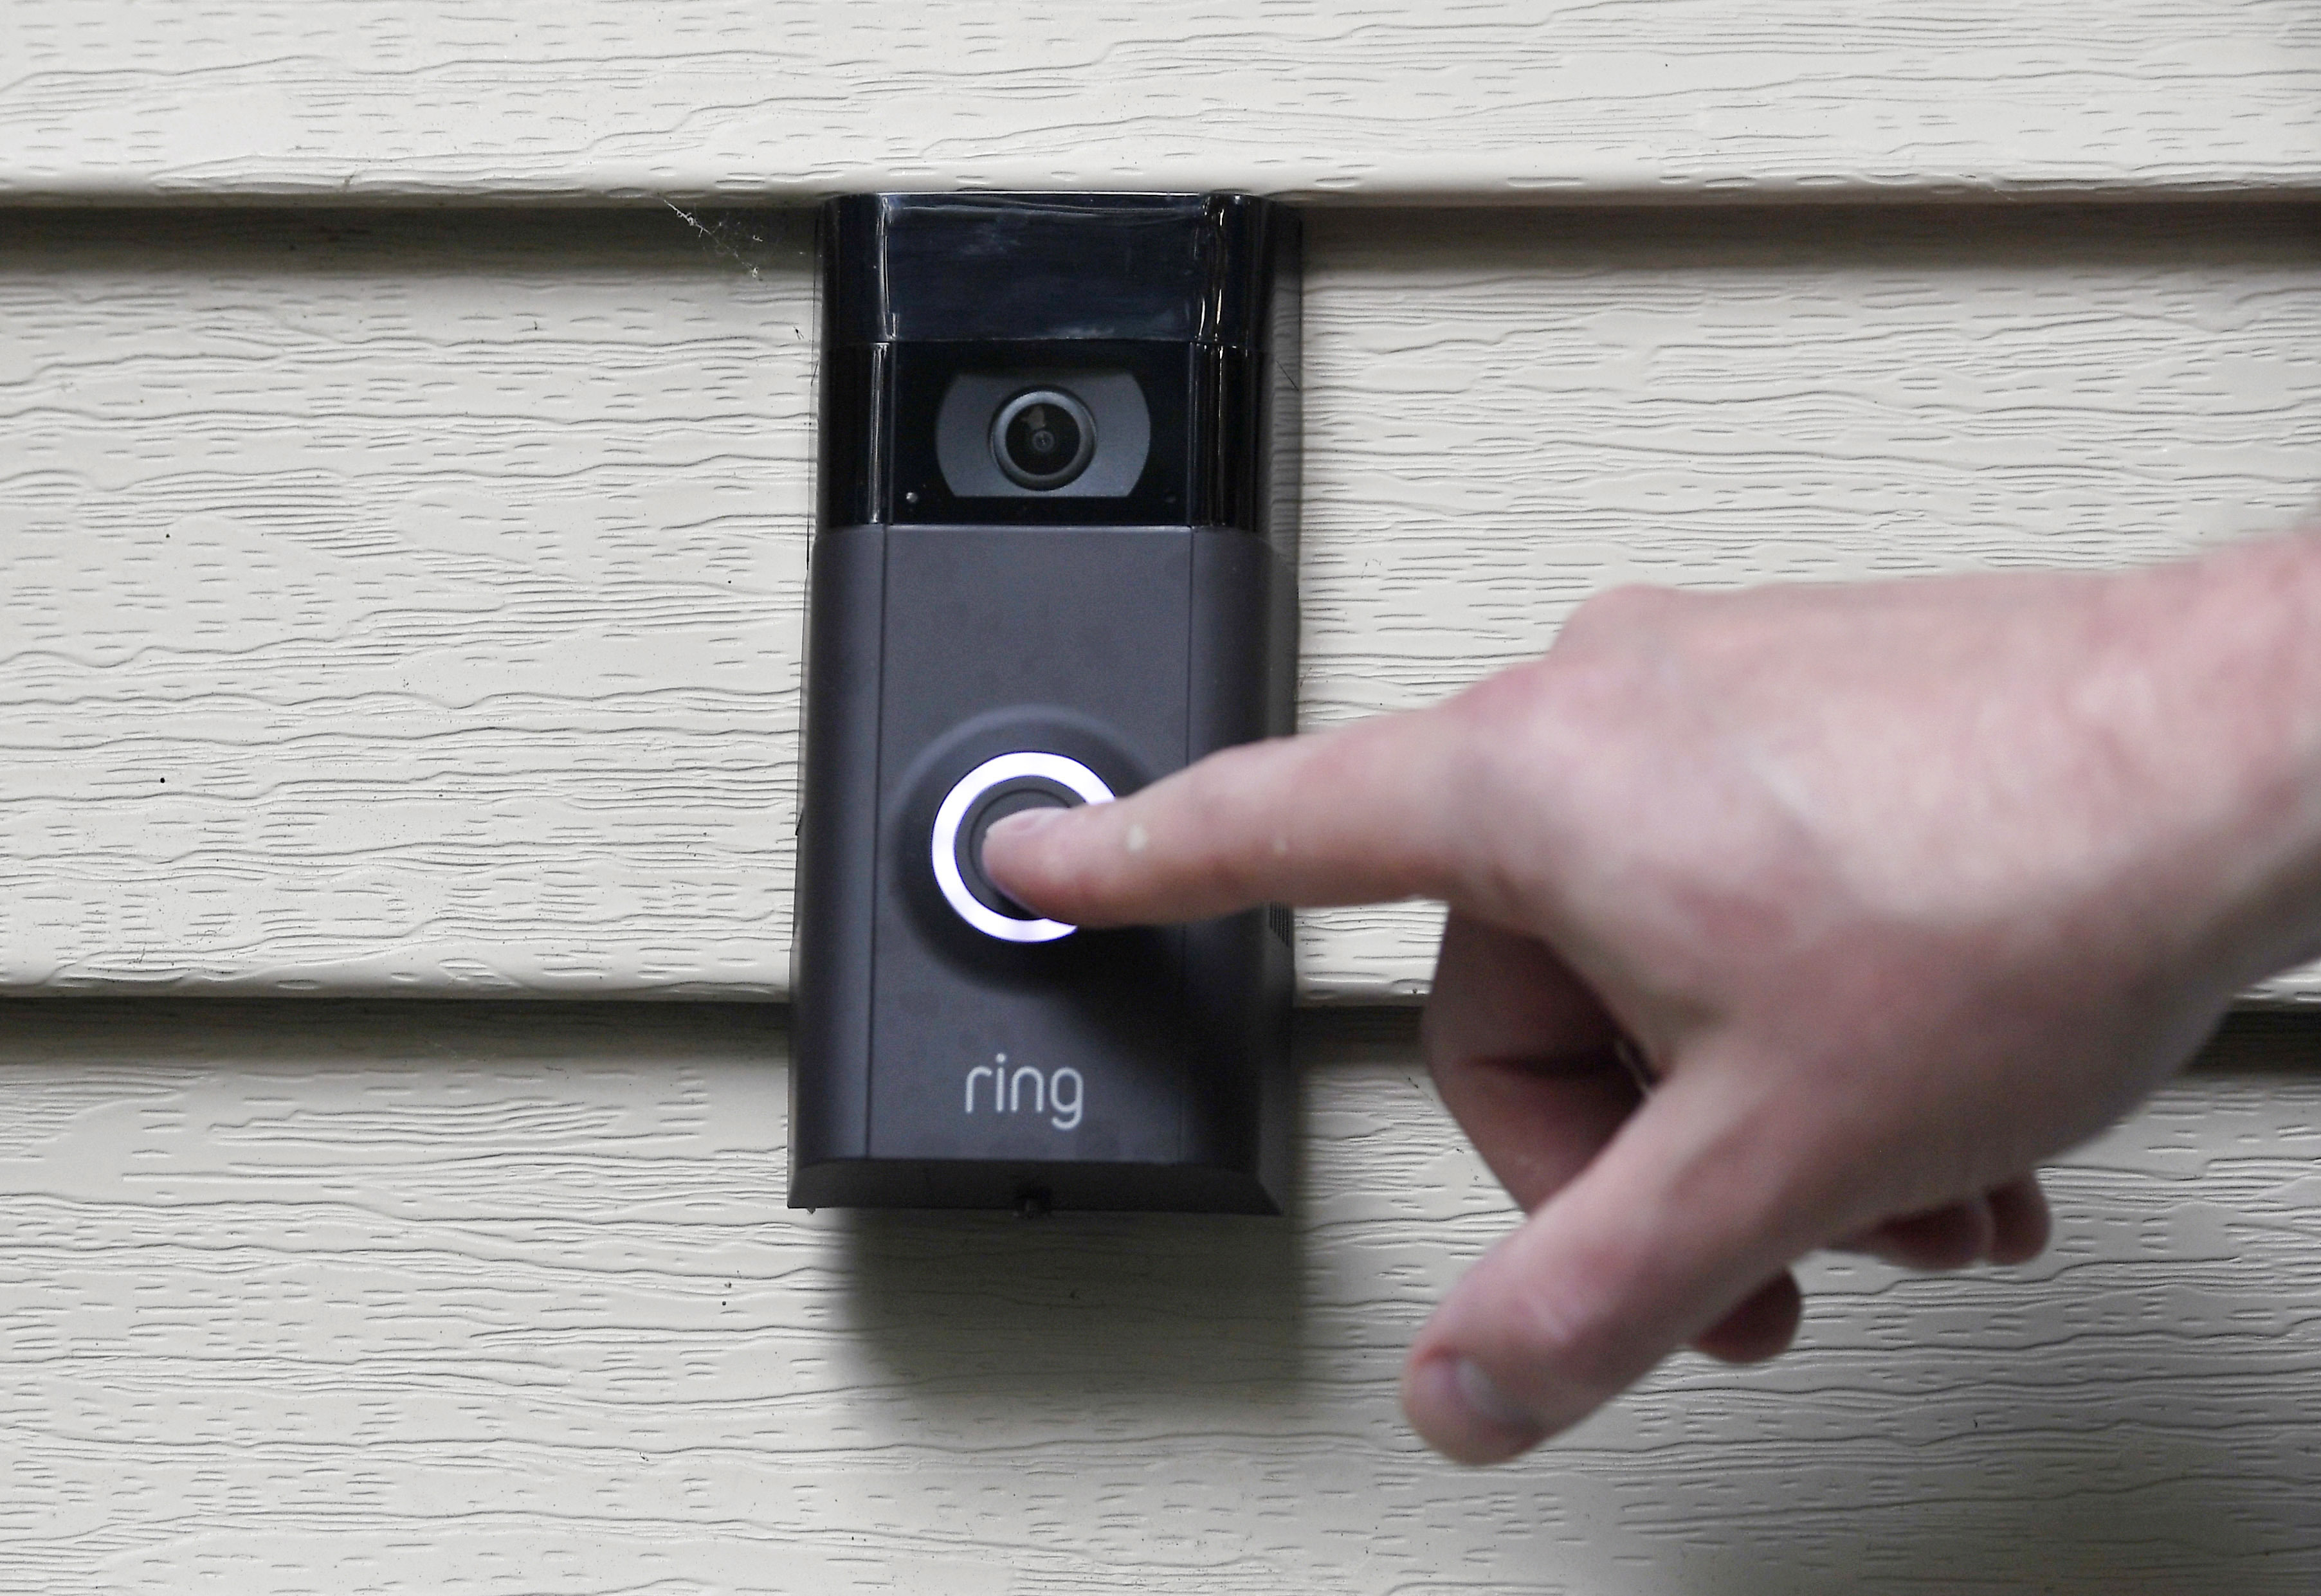 Fast-growing web of doorbell cams raises privacy fears | CBS 17